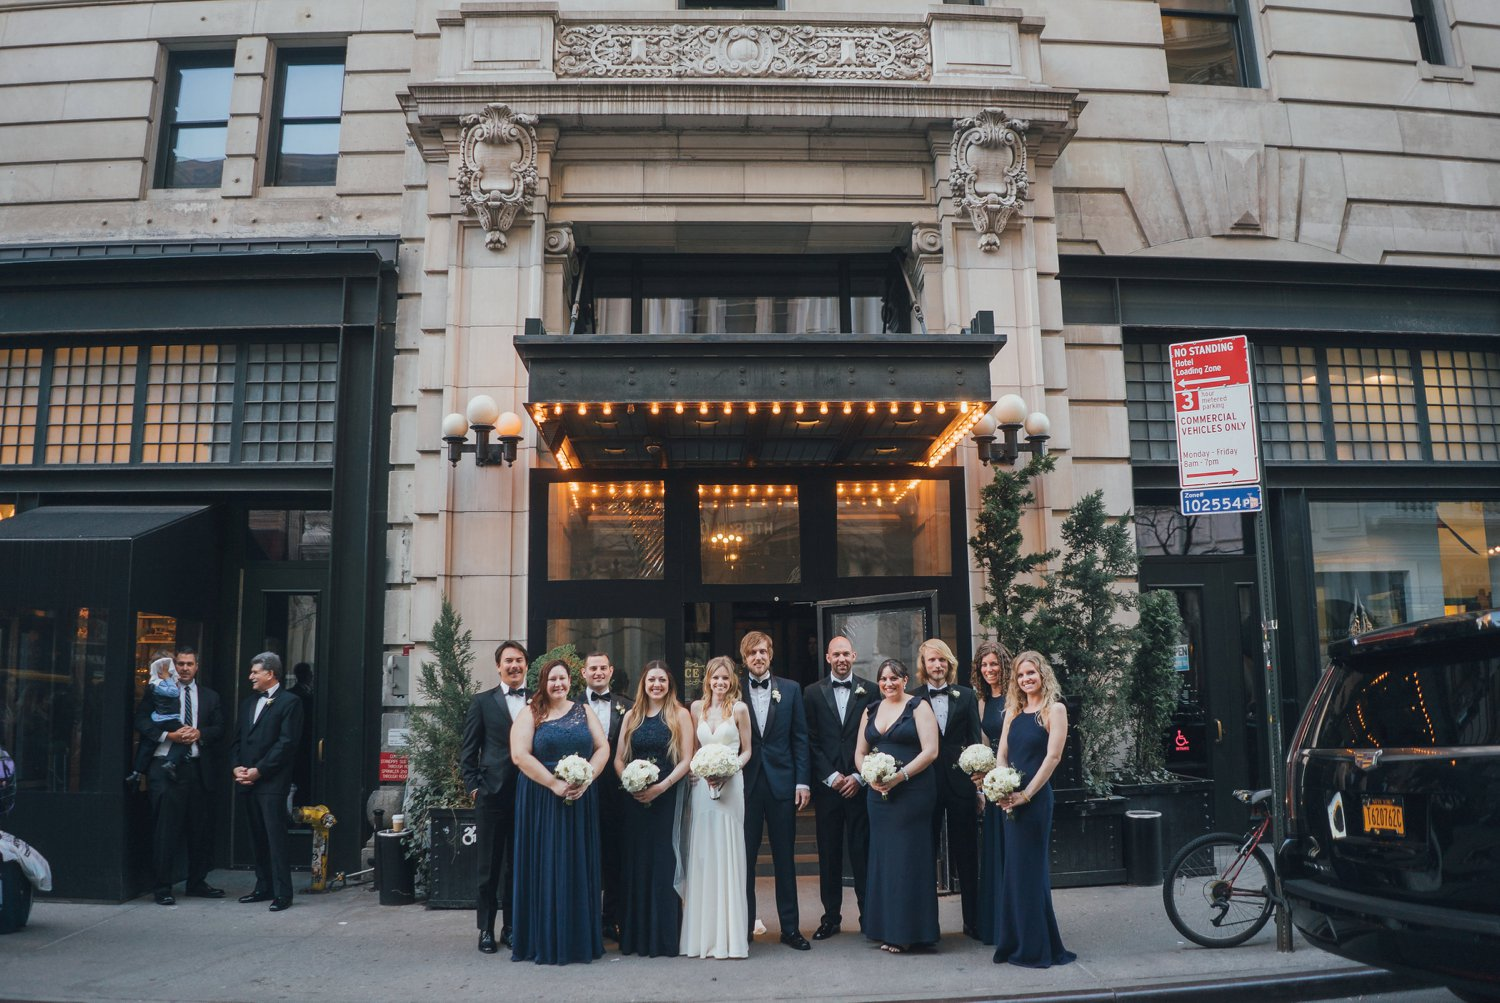 08ace-hotel-nyc-wedding-photography-by-intothestory-moo-jae_0391.jpg